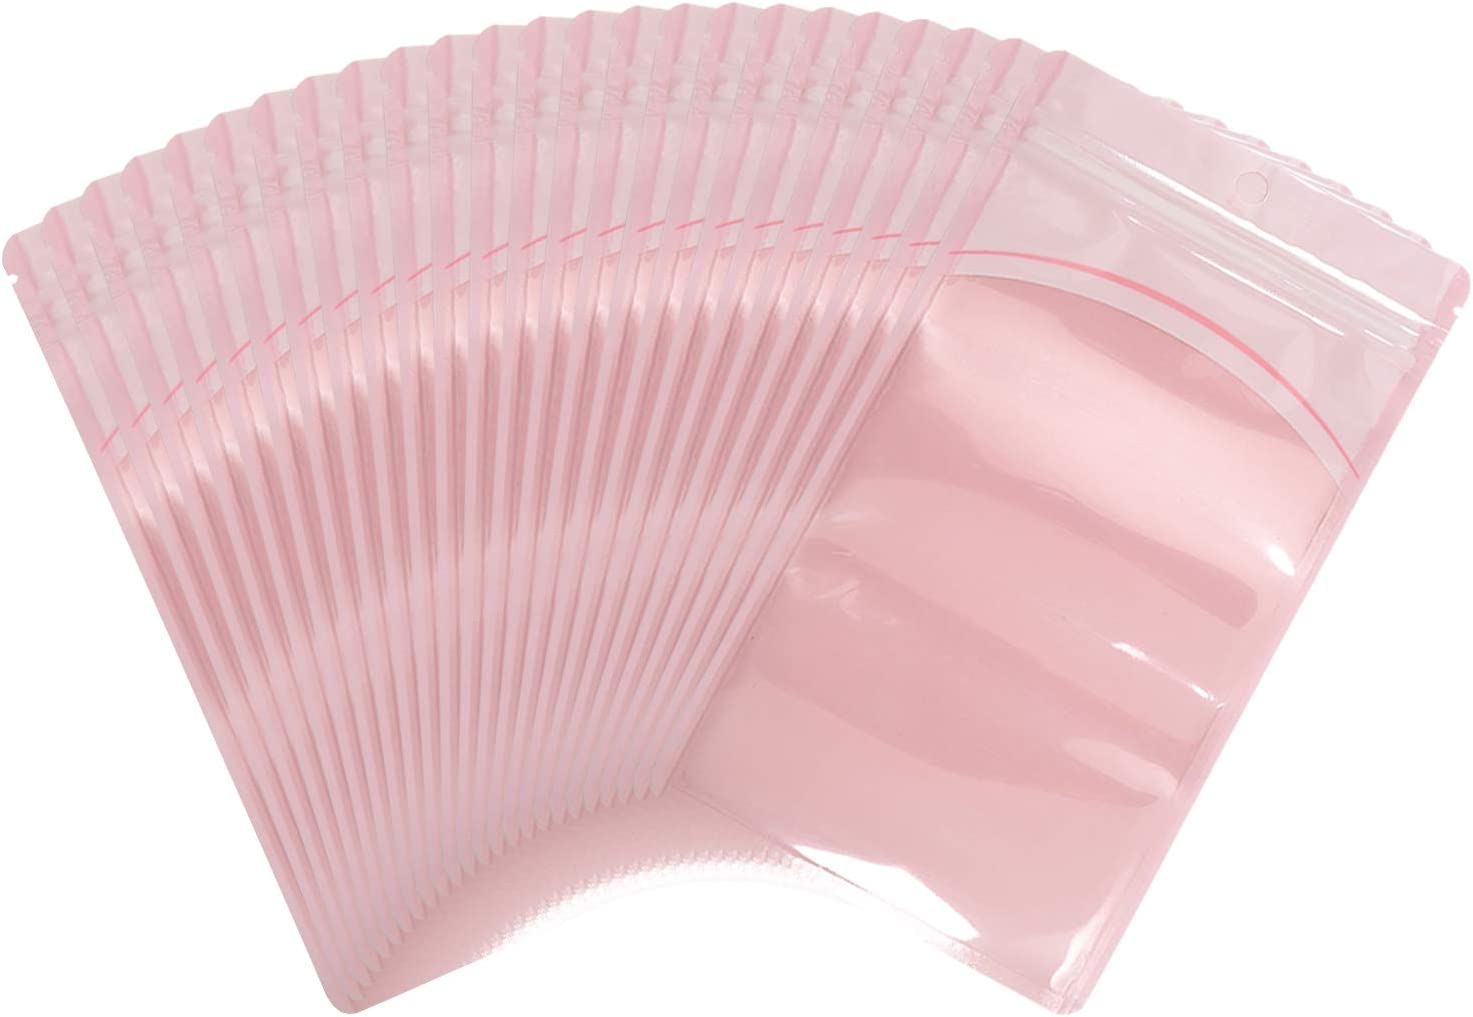 100 Pieces resealable Mylar Bags with Clear Window Smell Proof ziplock Pouch Packaging Bag for Lip Gloss Eyelash Tea Party Favors Sample Food Jewelry Craft Product (Macaron Pink, 3.15''x4.72'')